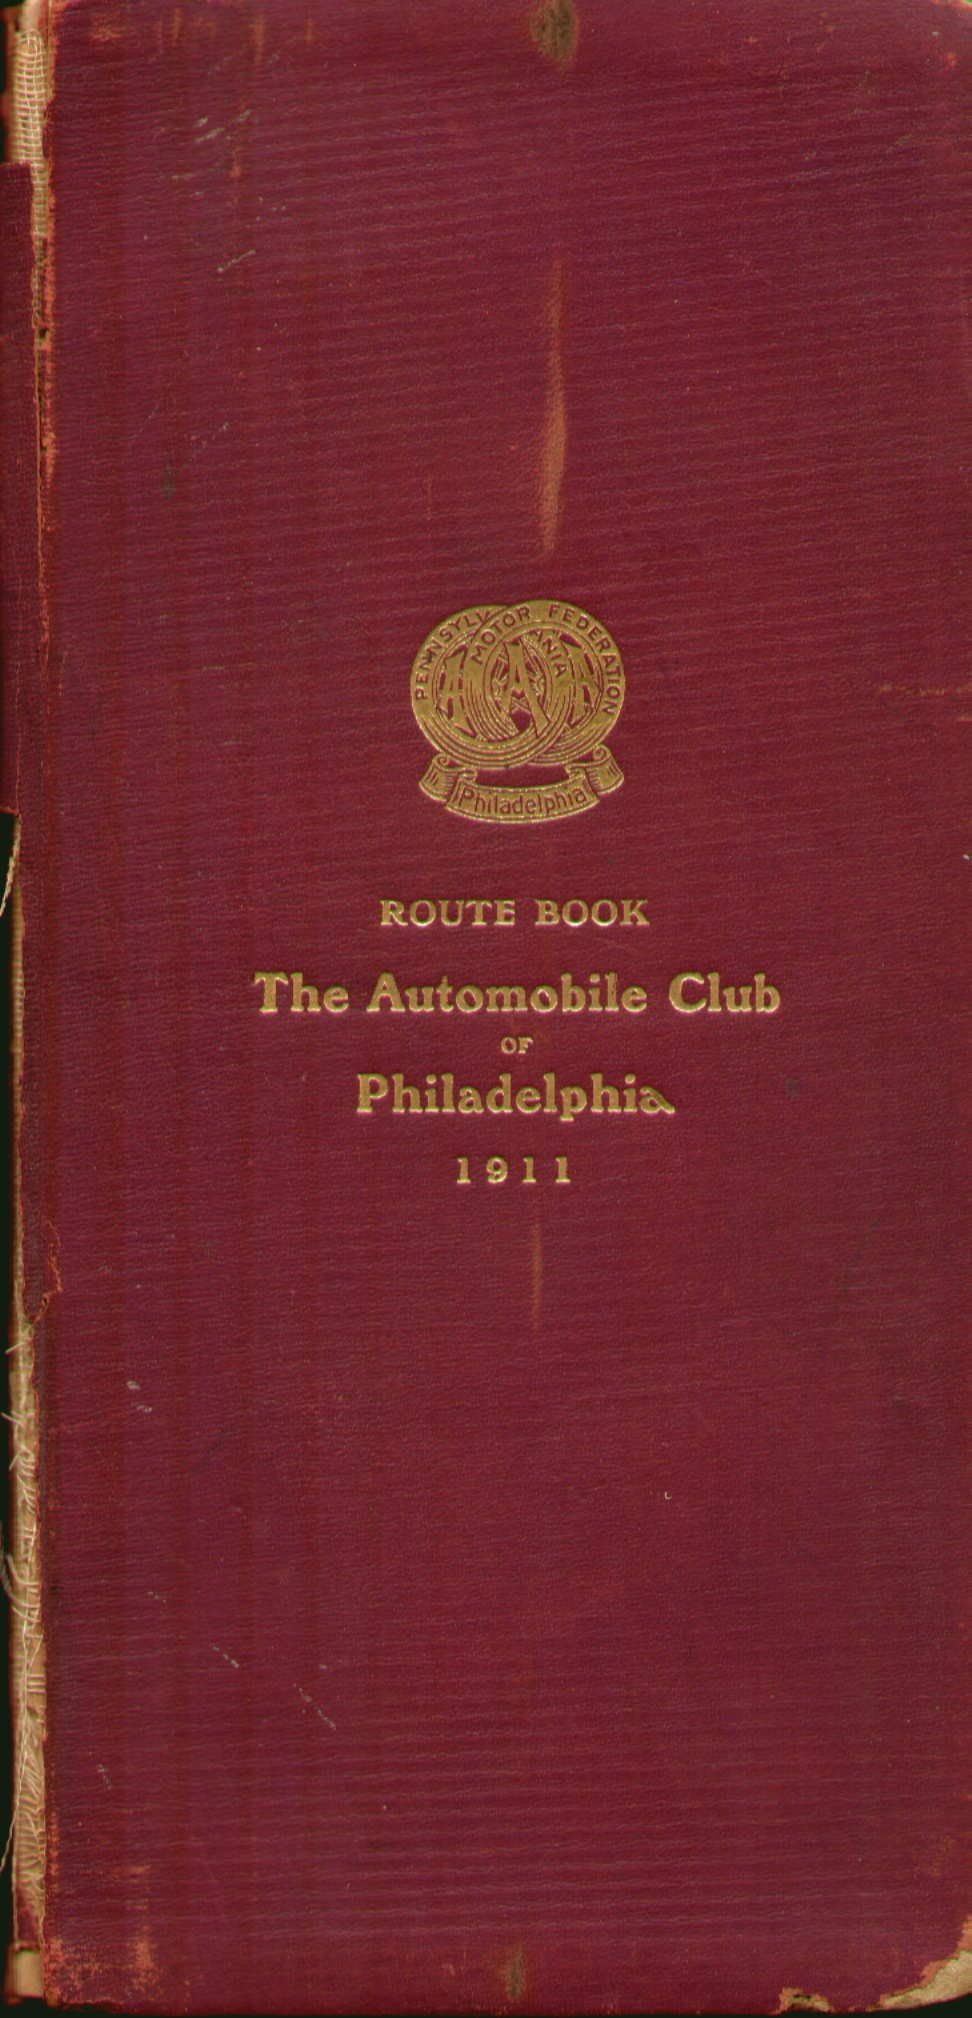 1911 ROUTE BOOK THE AUTOMOBILE CLUB OF PHILADELPHIA 1911, prepared and published by the Automobile Club of Philadelphia, N. W. Cor. Broad and Locust Sts., ...